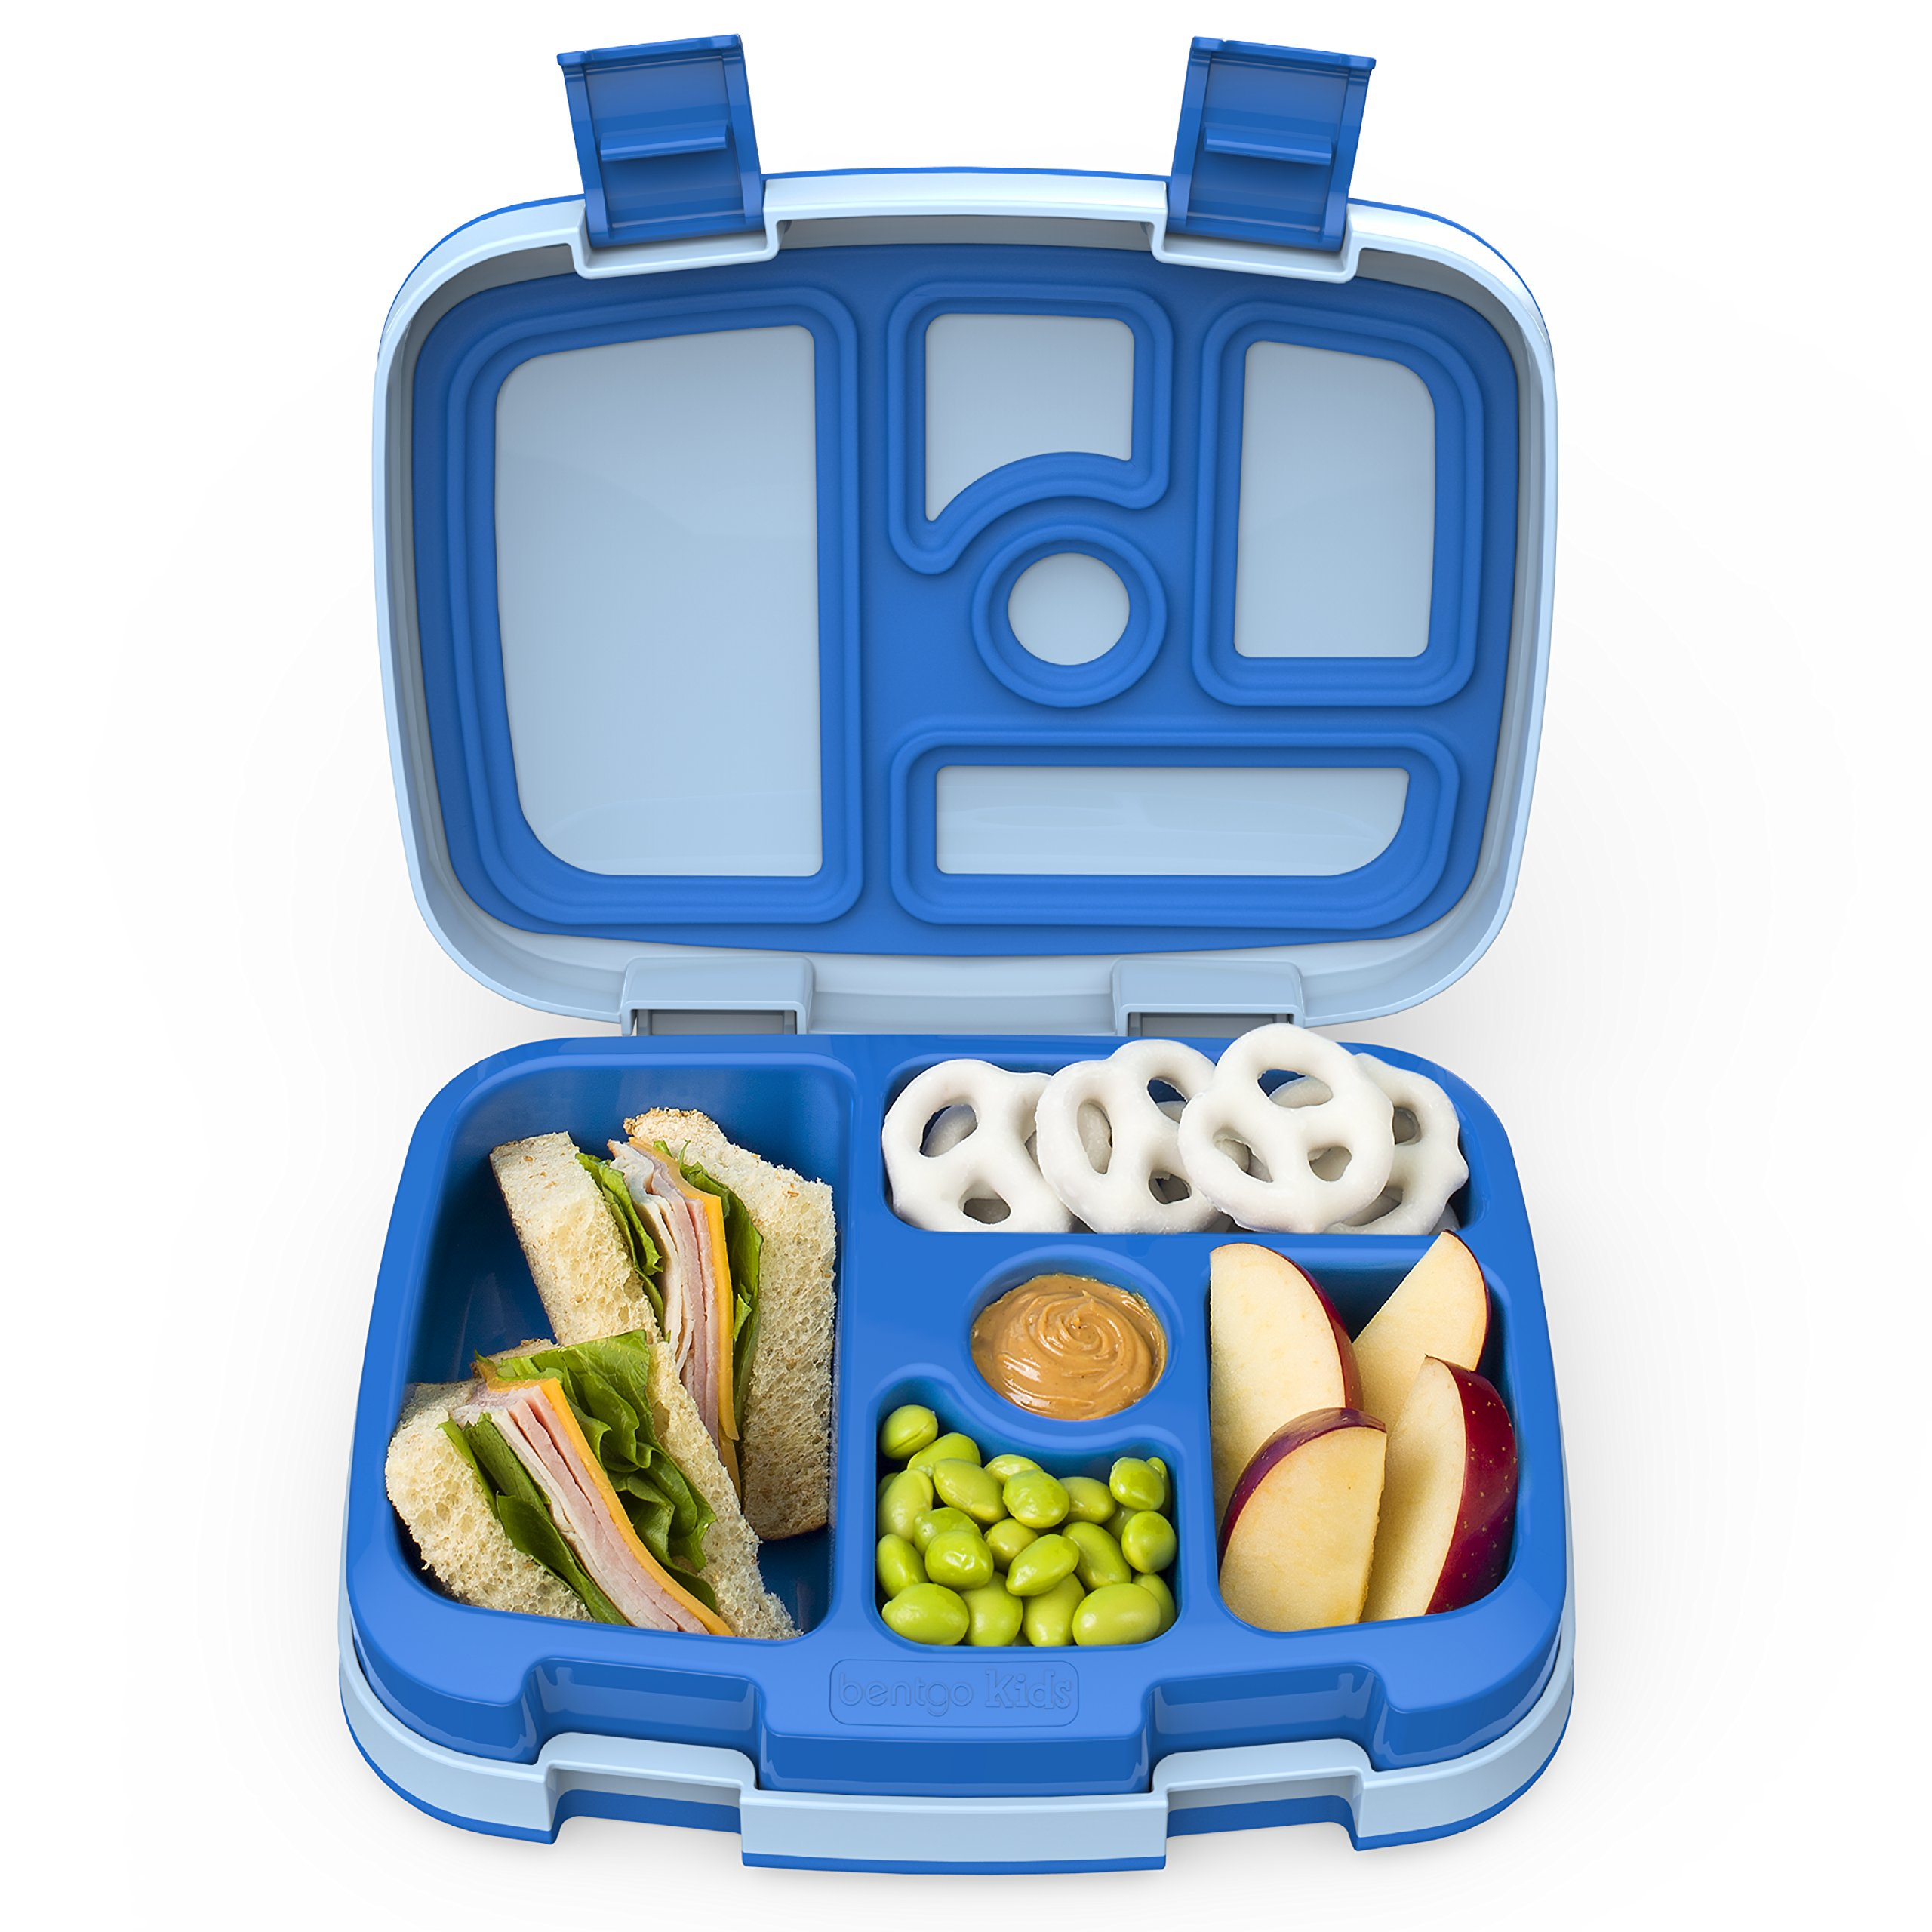 Bentgo Kids Childrens Lunch Box - Bento-Styled Lunch Solution Offers Durable, Leak-Proof, On-the-Go Meal and Snack Packing by Bentgo (Image #1)